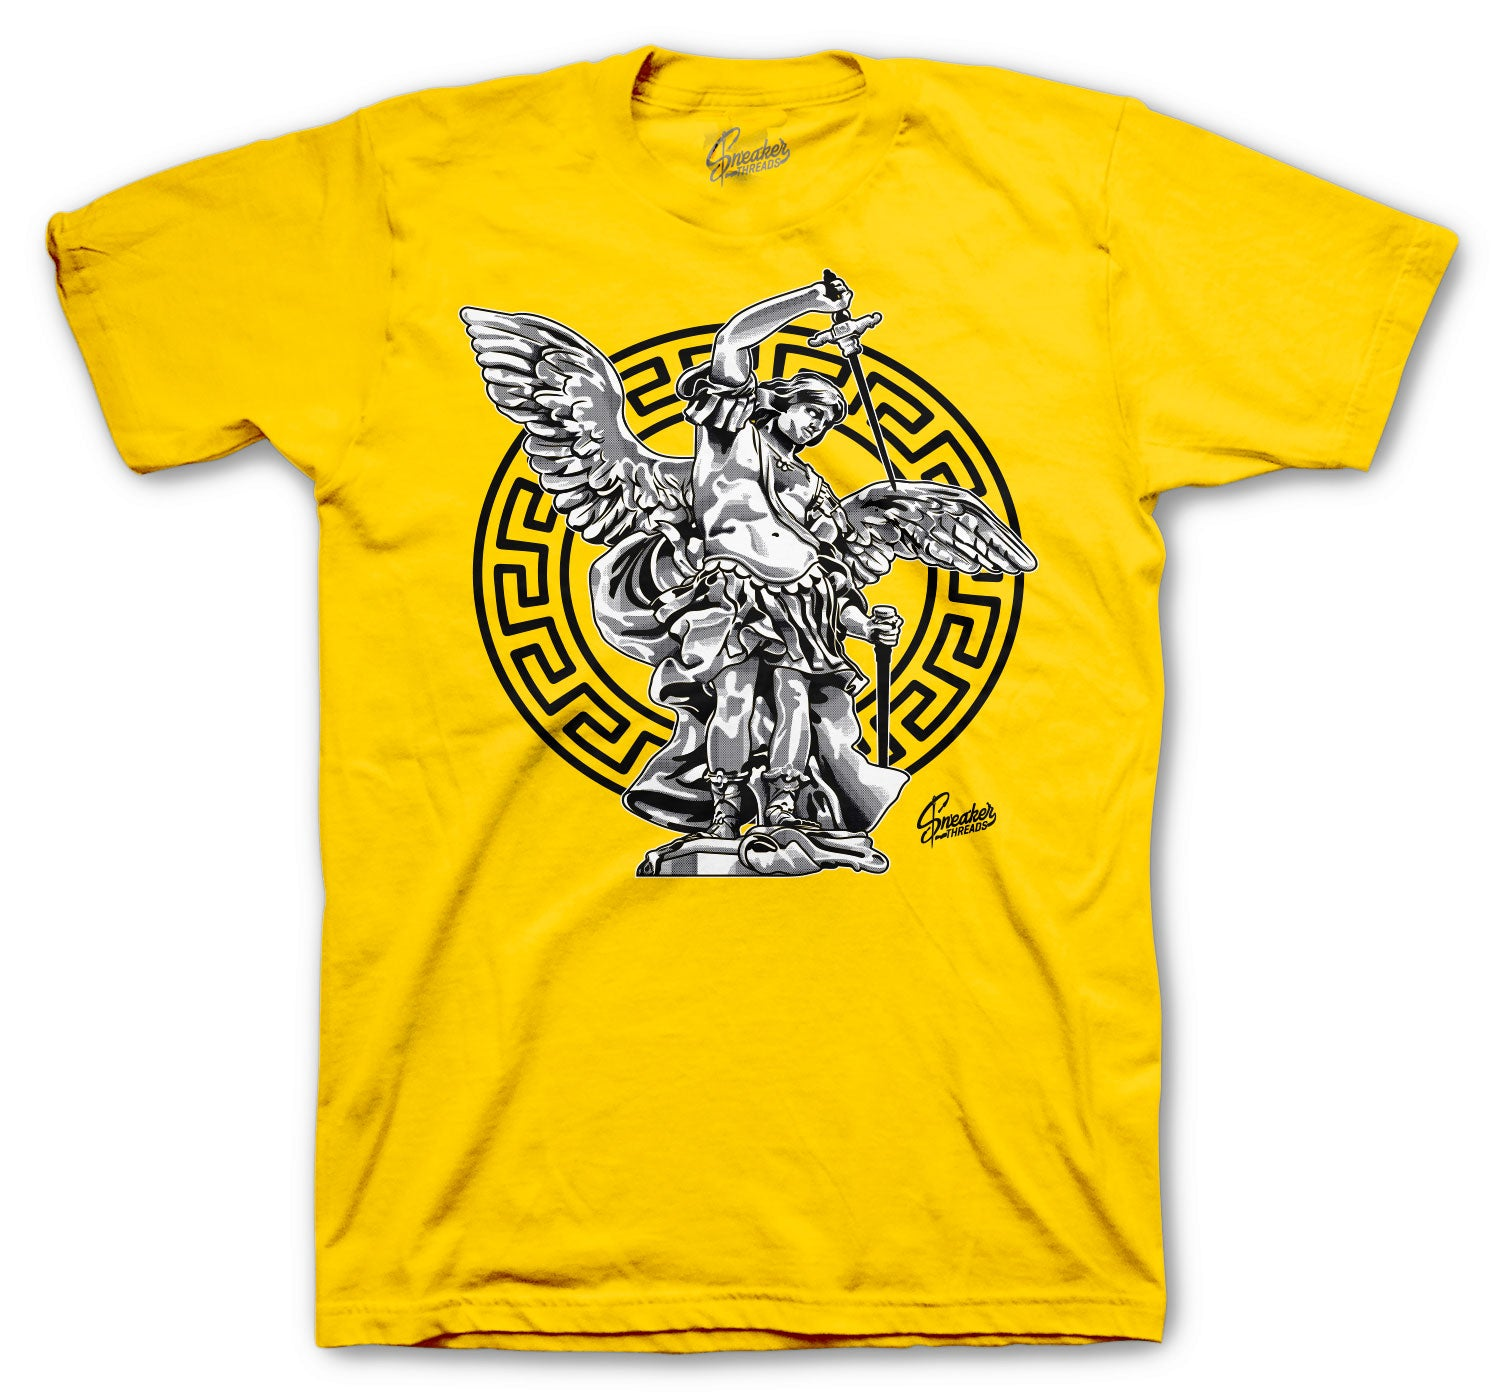 gold tee collection for men matching with the university gold 12s